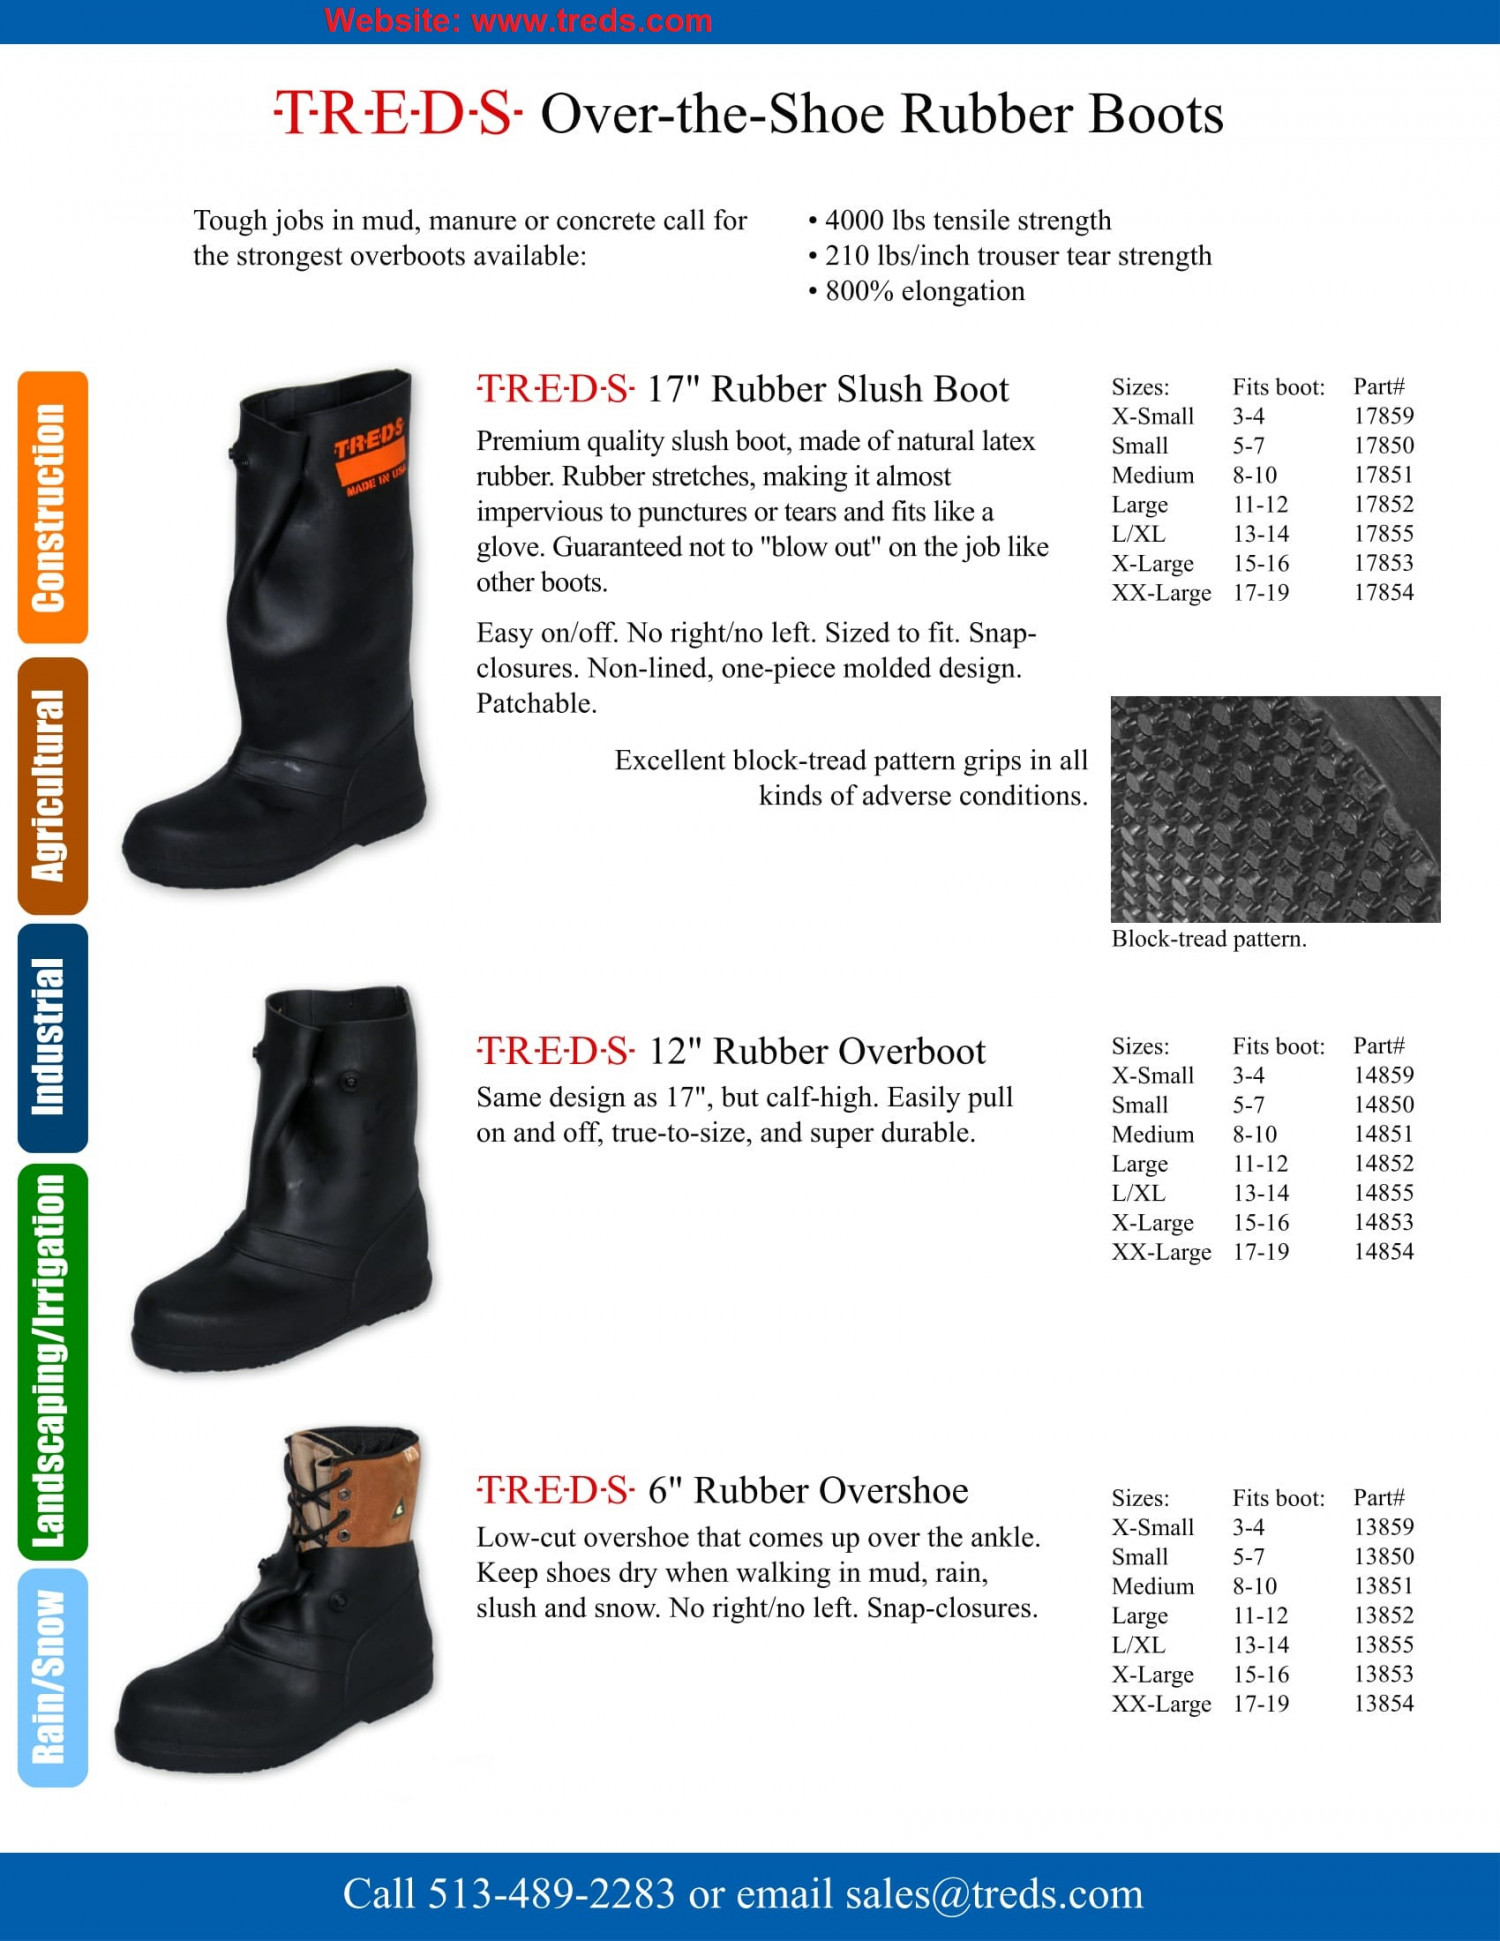 TREDS Over-the-Shoe Rubber Boots